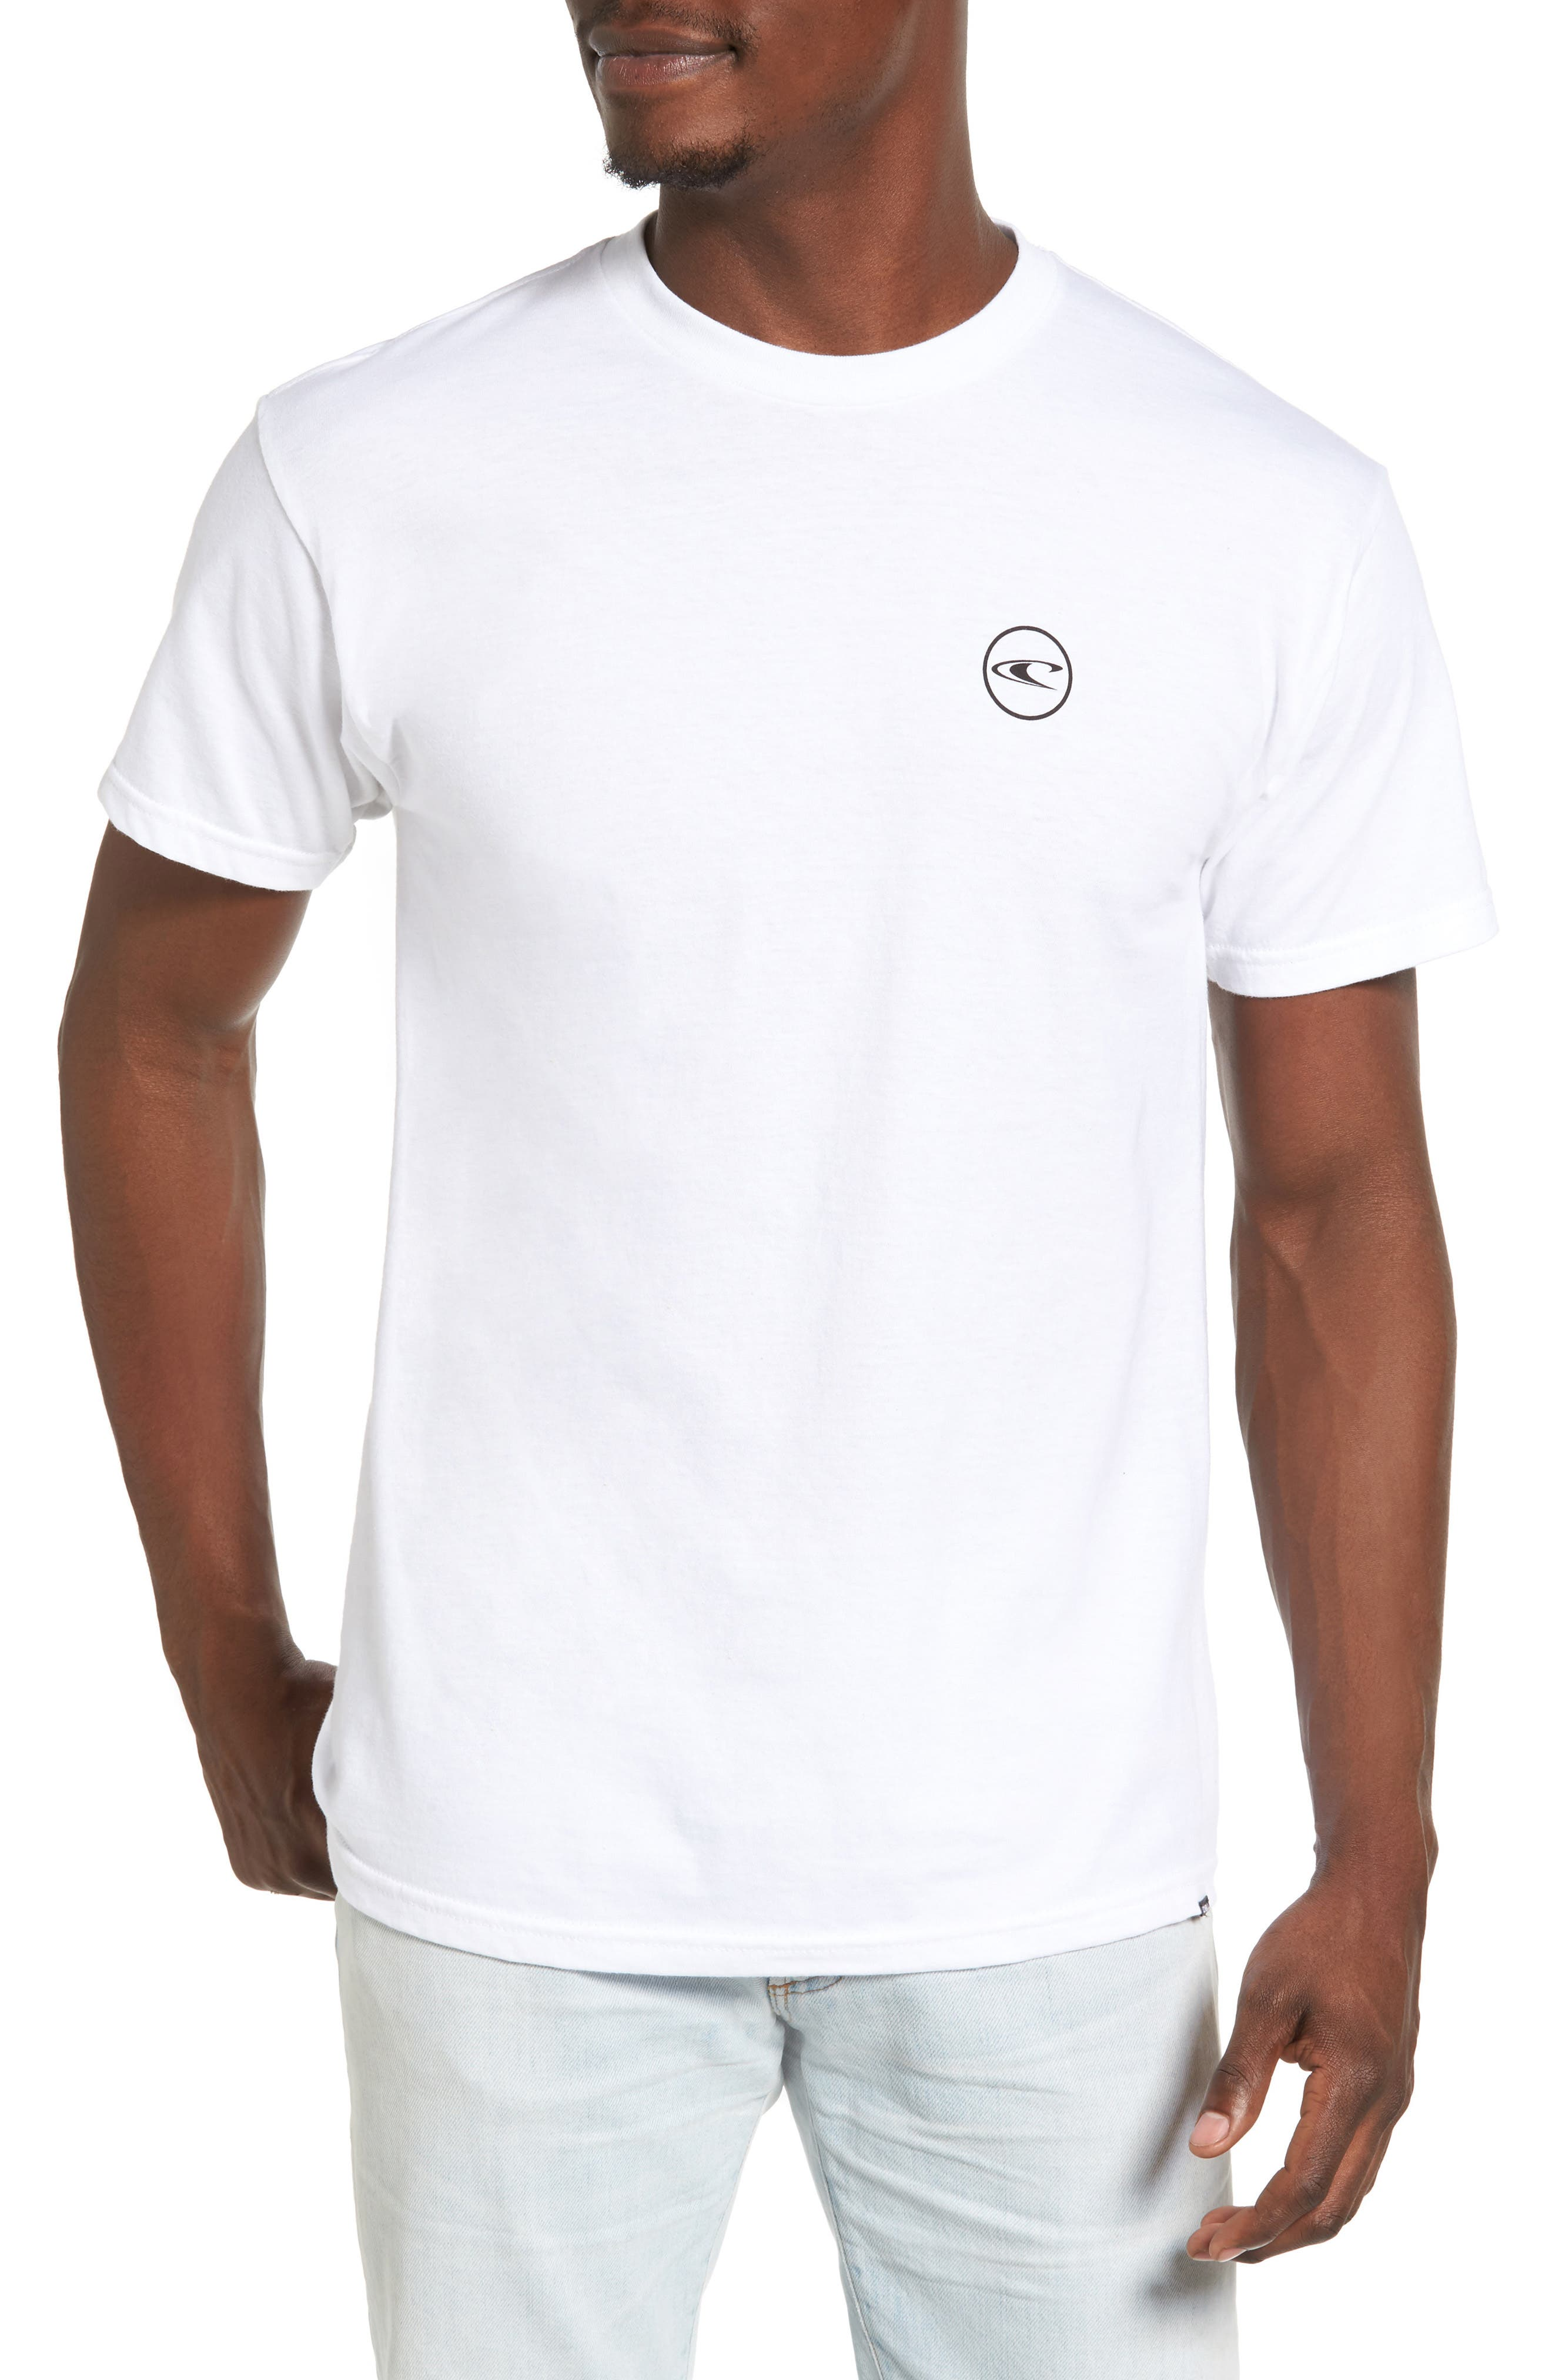 ONEILL Boards Graphic T-Shirt